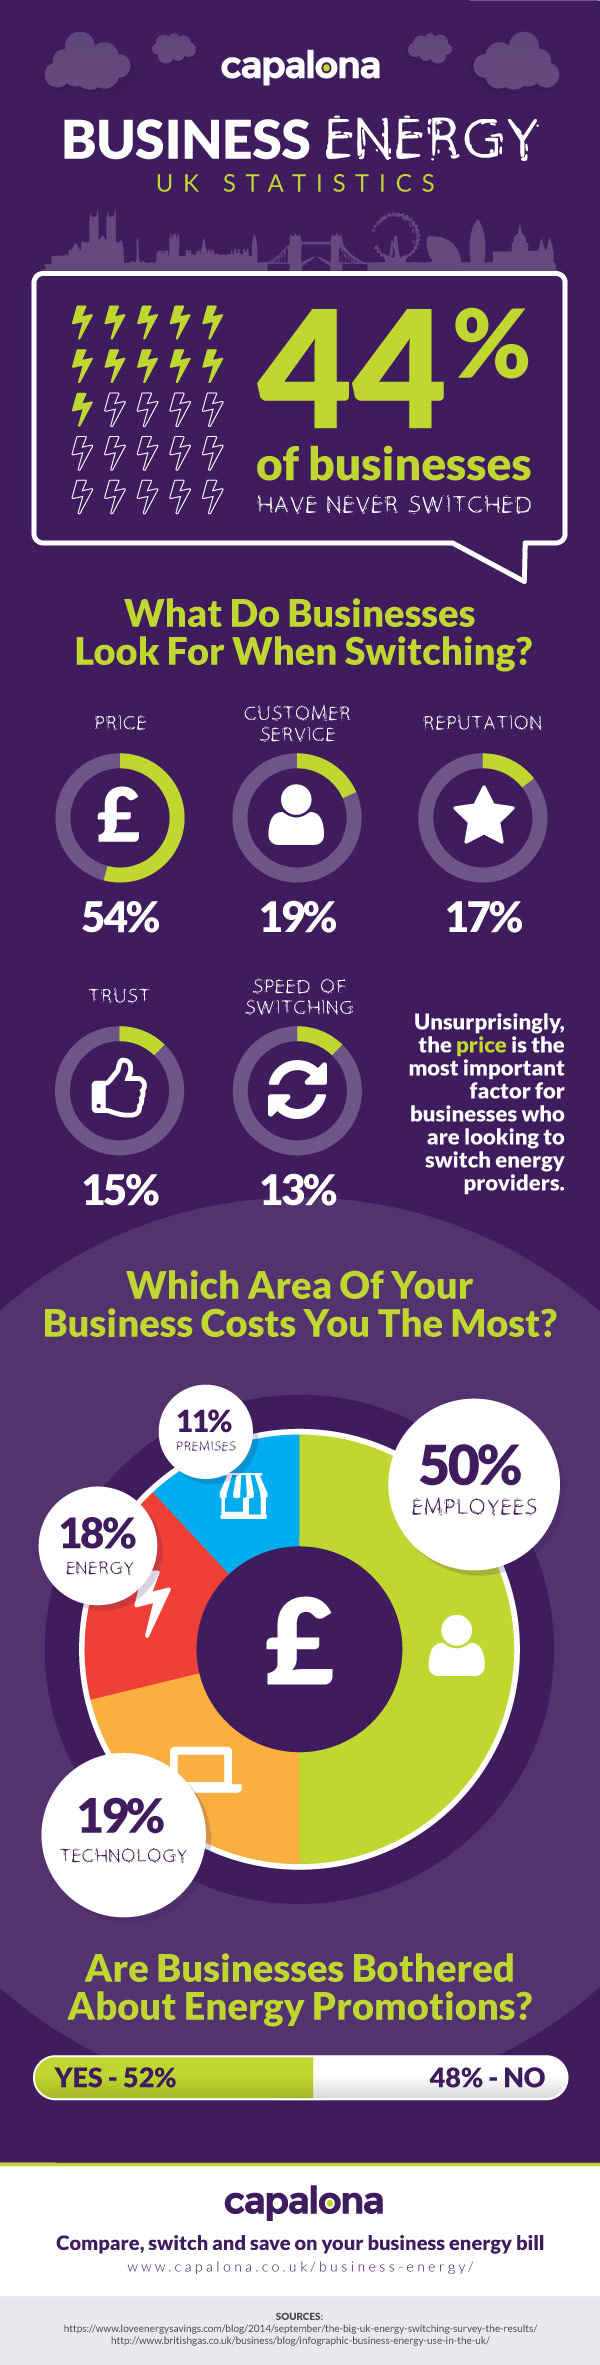 Business Energy UK Statistics infographic